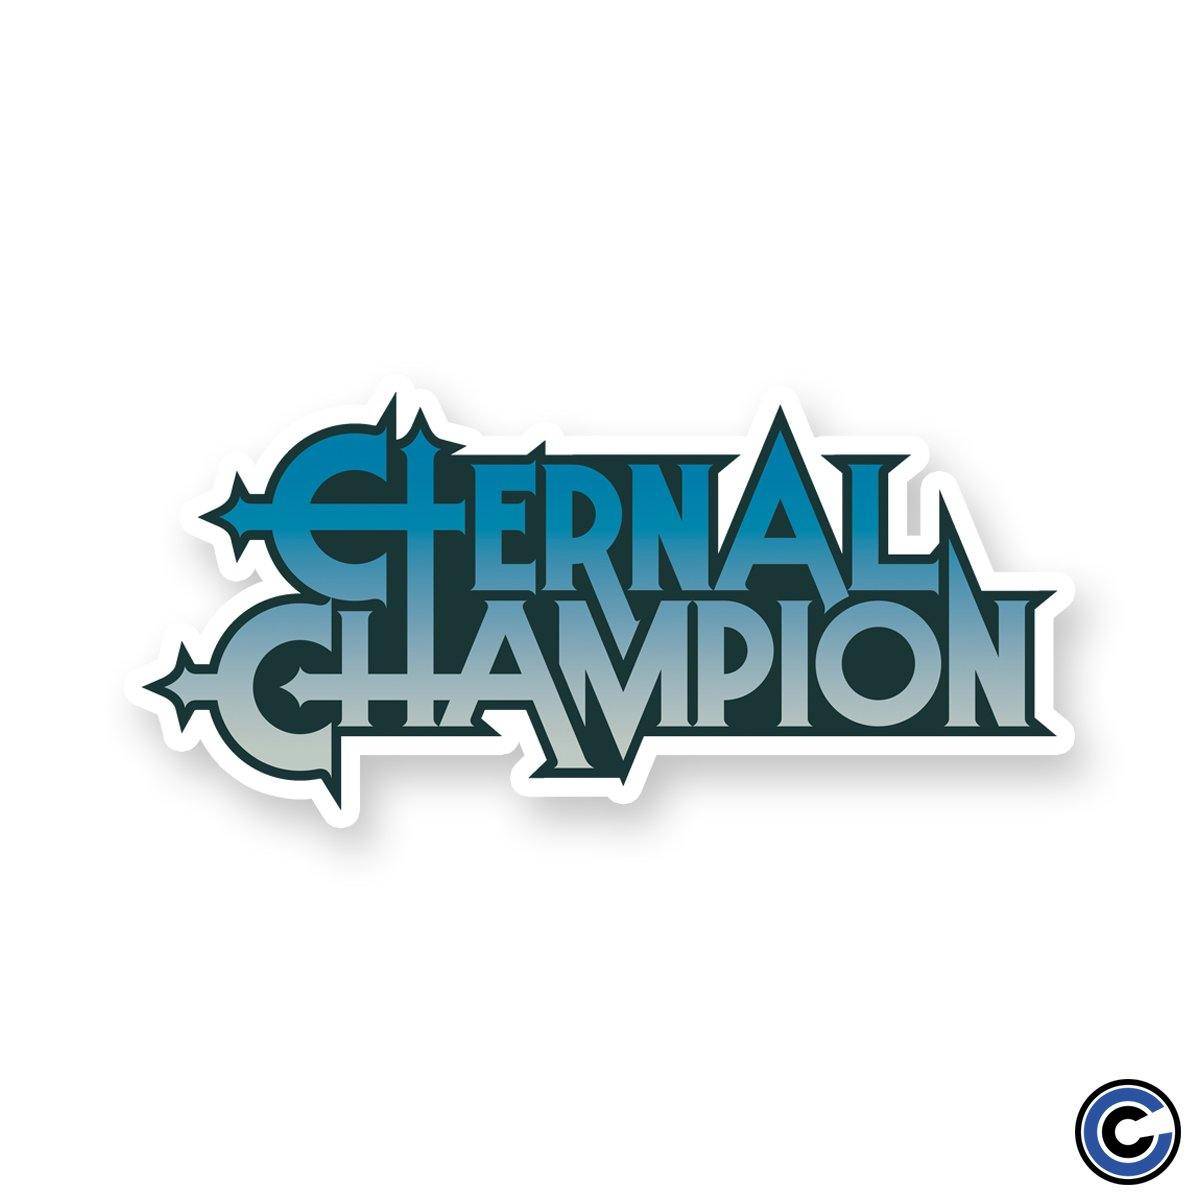 Eternal champion logo sticker